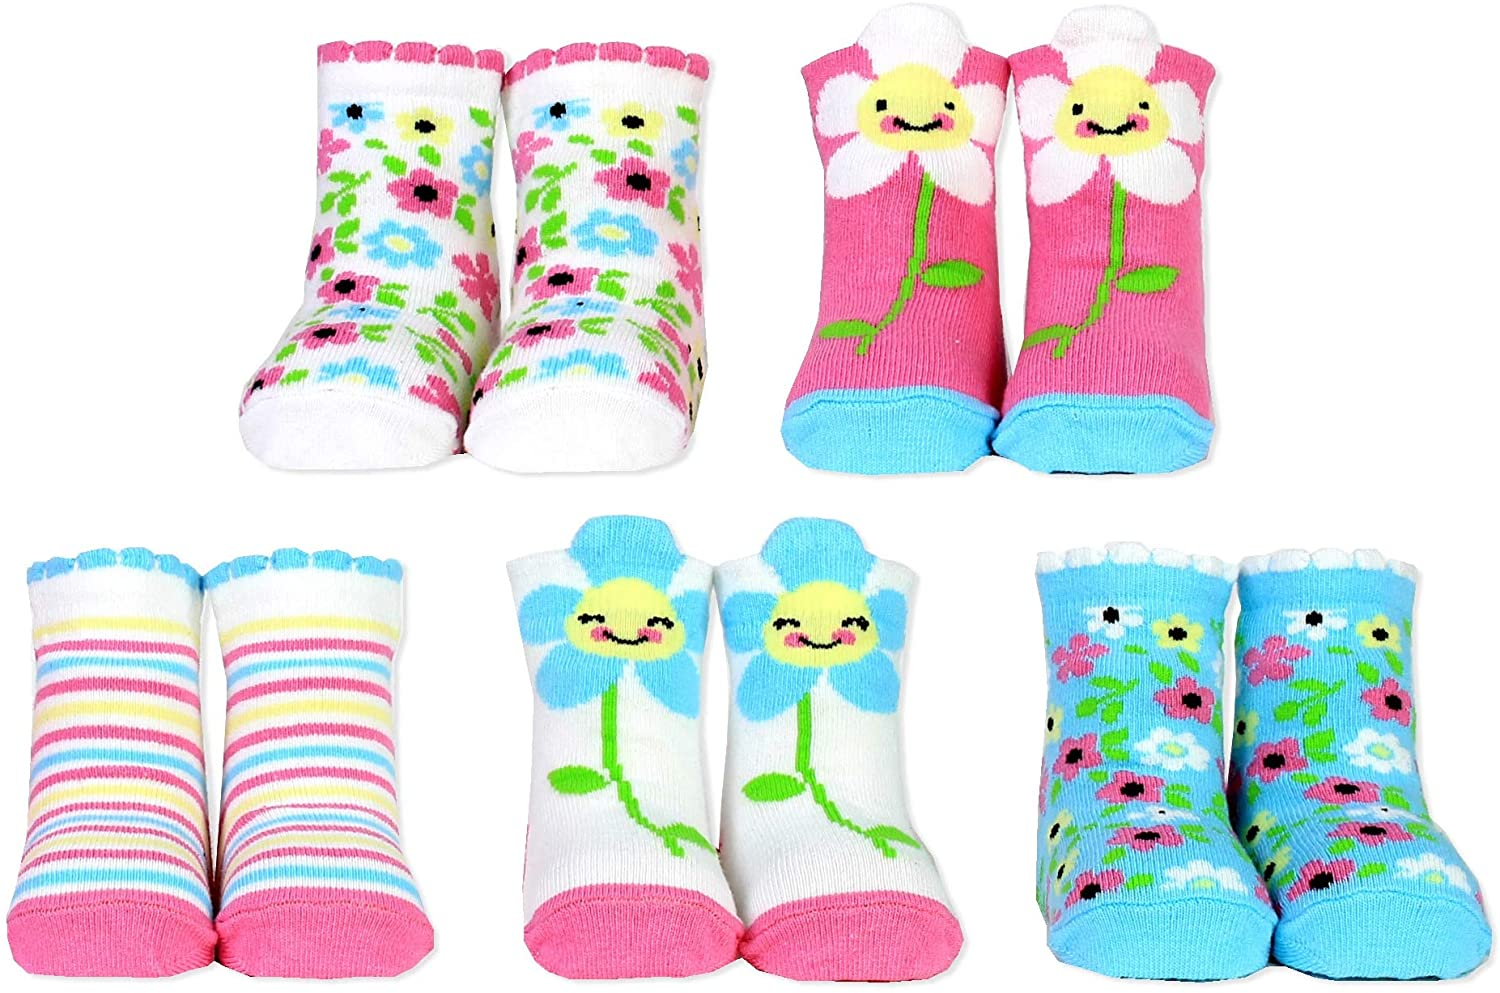 Cucamelon Daisy 5 Pairs of Socks 1-2 Years Toddler Giftboxed